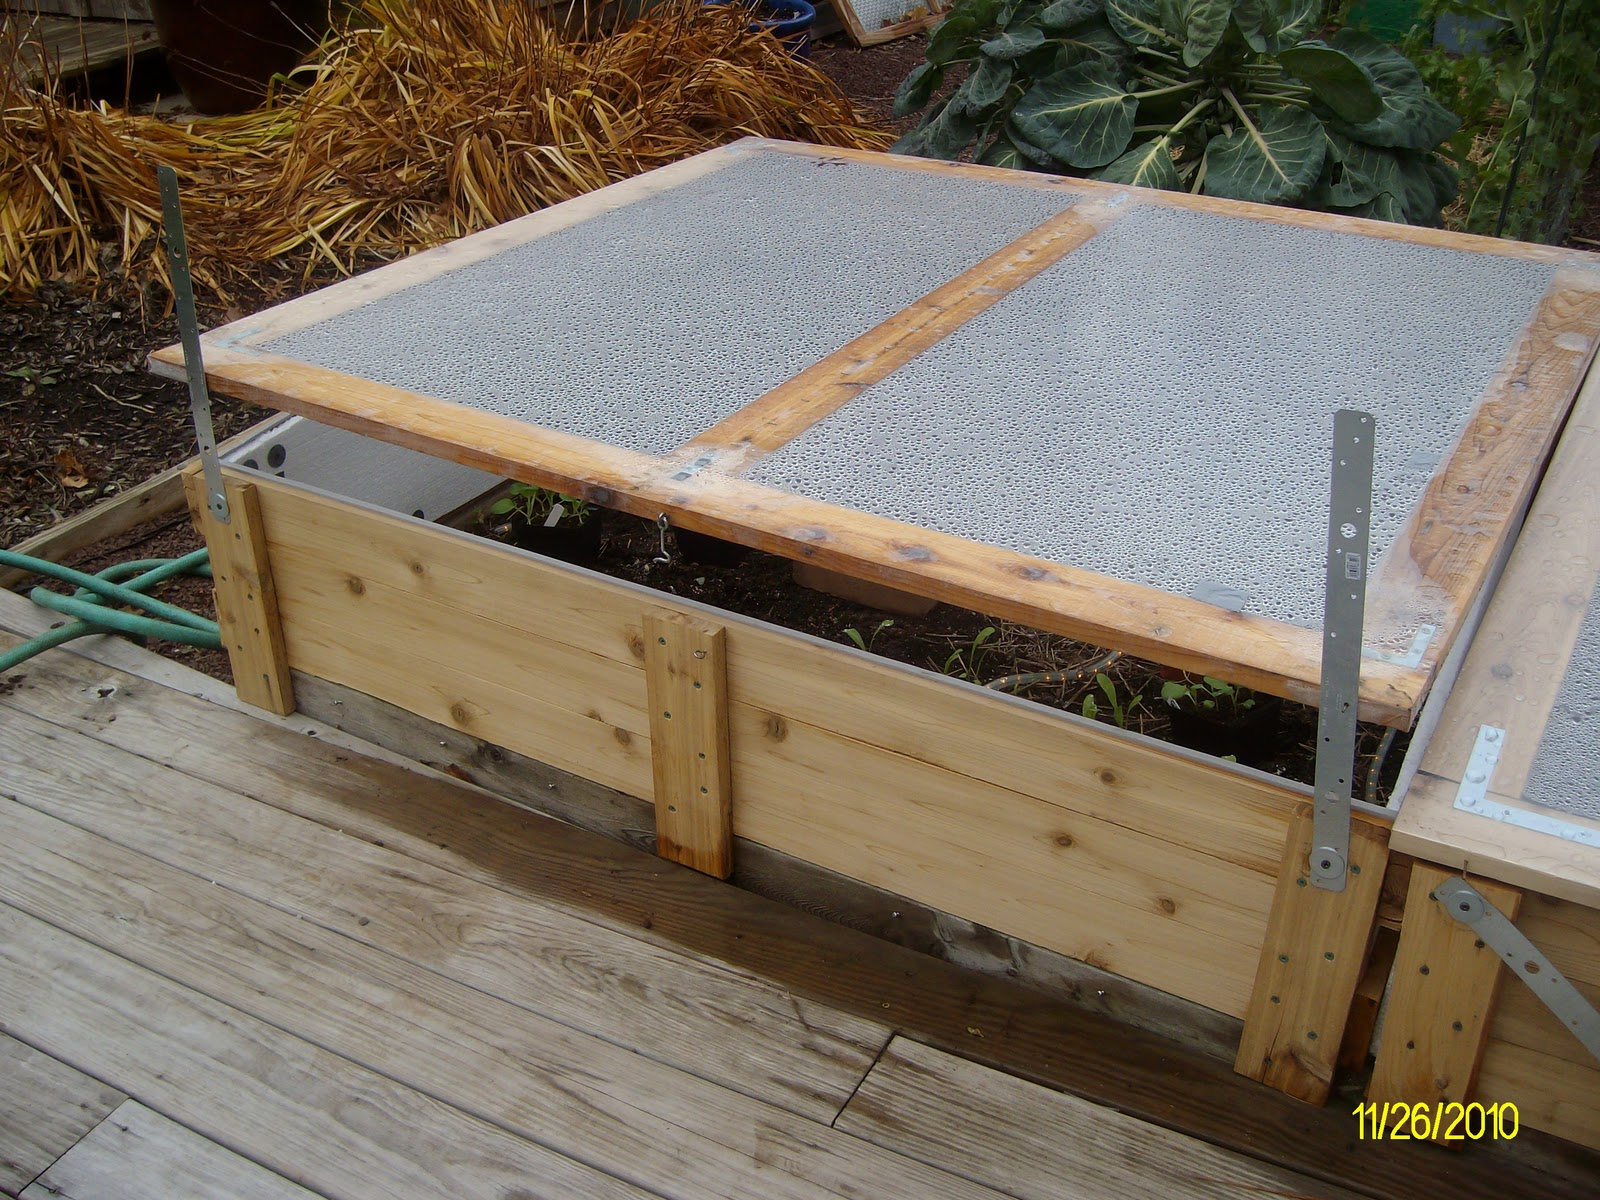 The Gardener of Eden: Building Cold Frames - the finishing touches